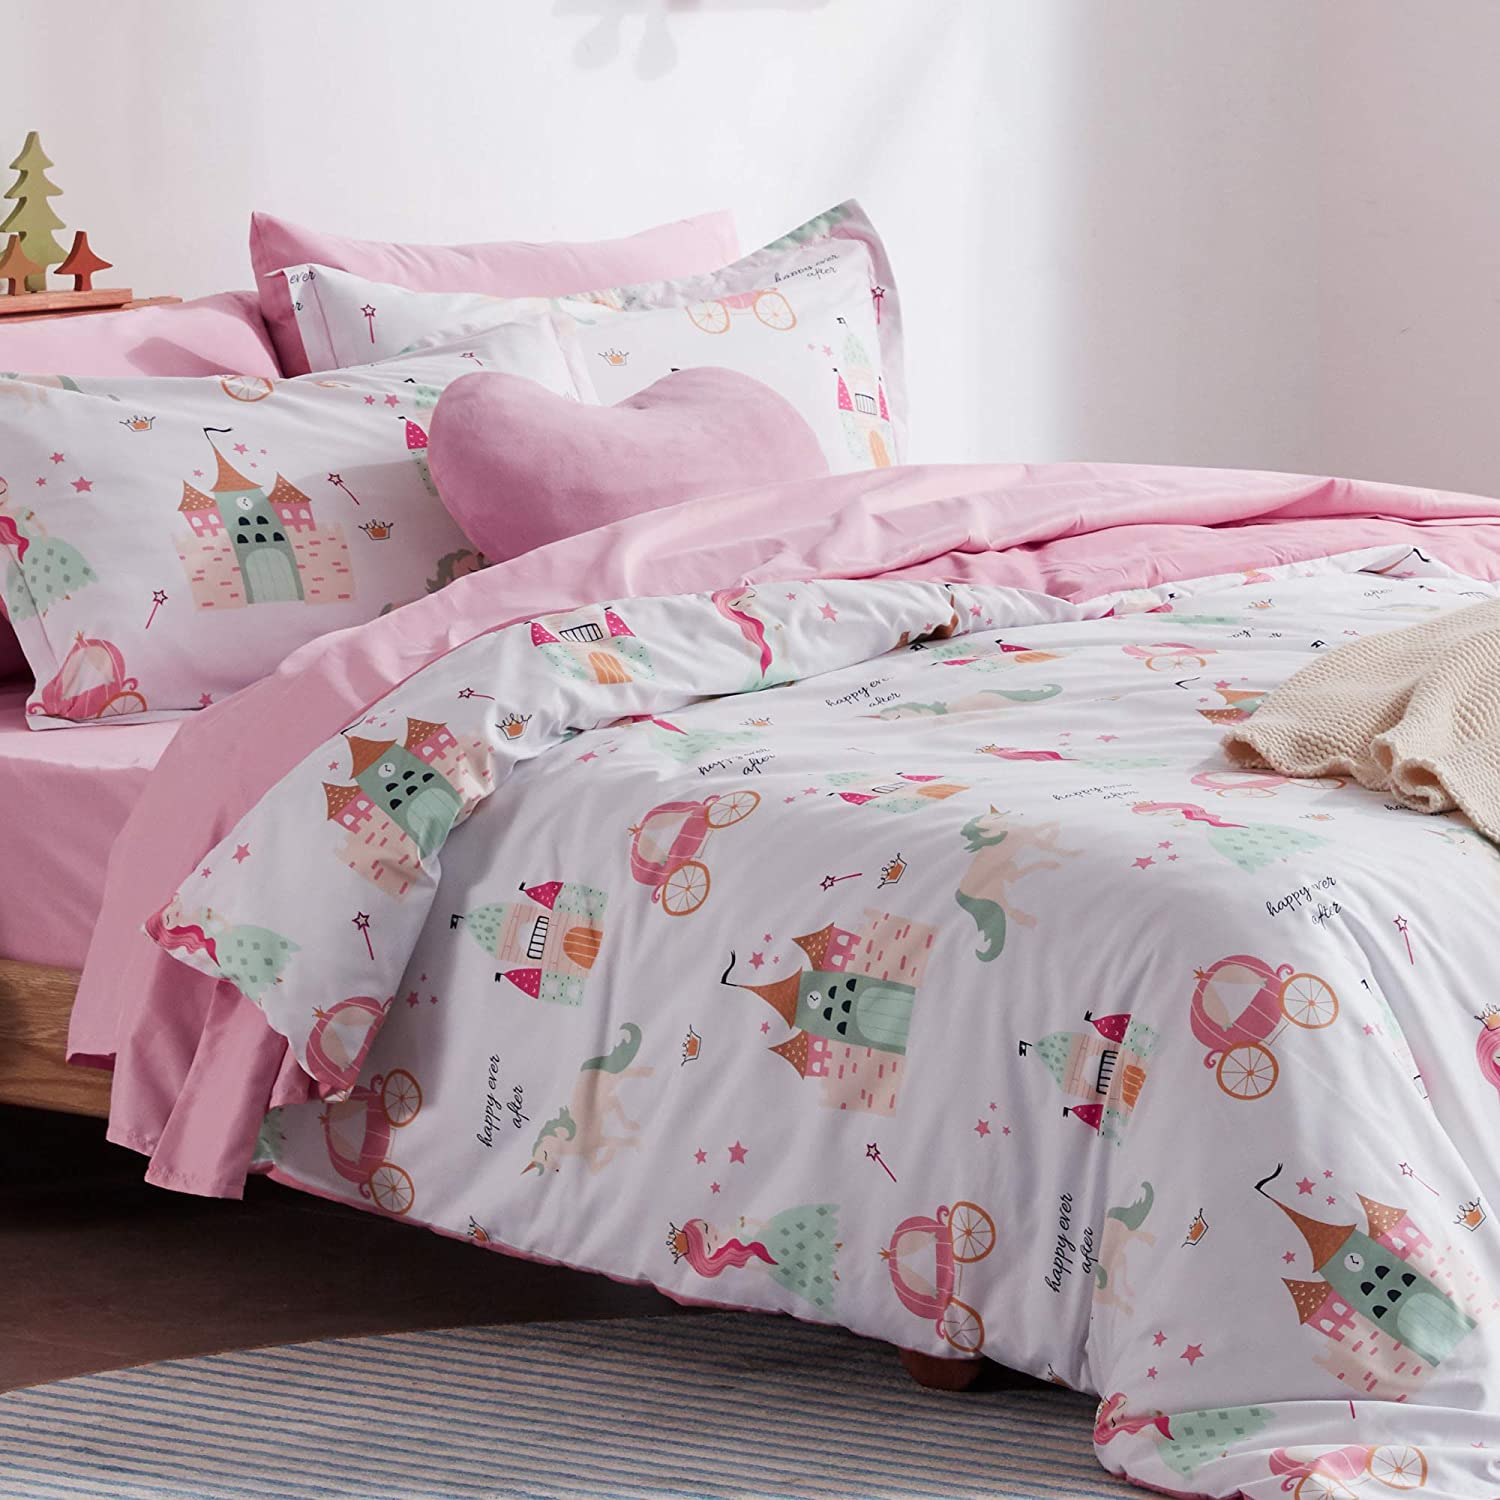 SLEEP ZONE Kids Printed Duvet Cover Financial sales sale Soft Brus Set Ultra Cheap mail order shopping Pieces 2